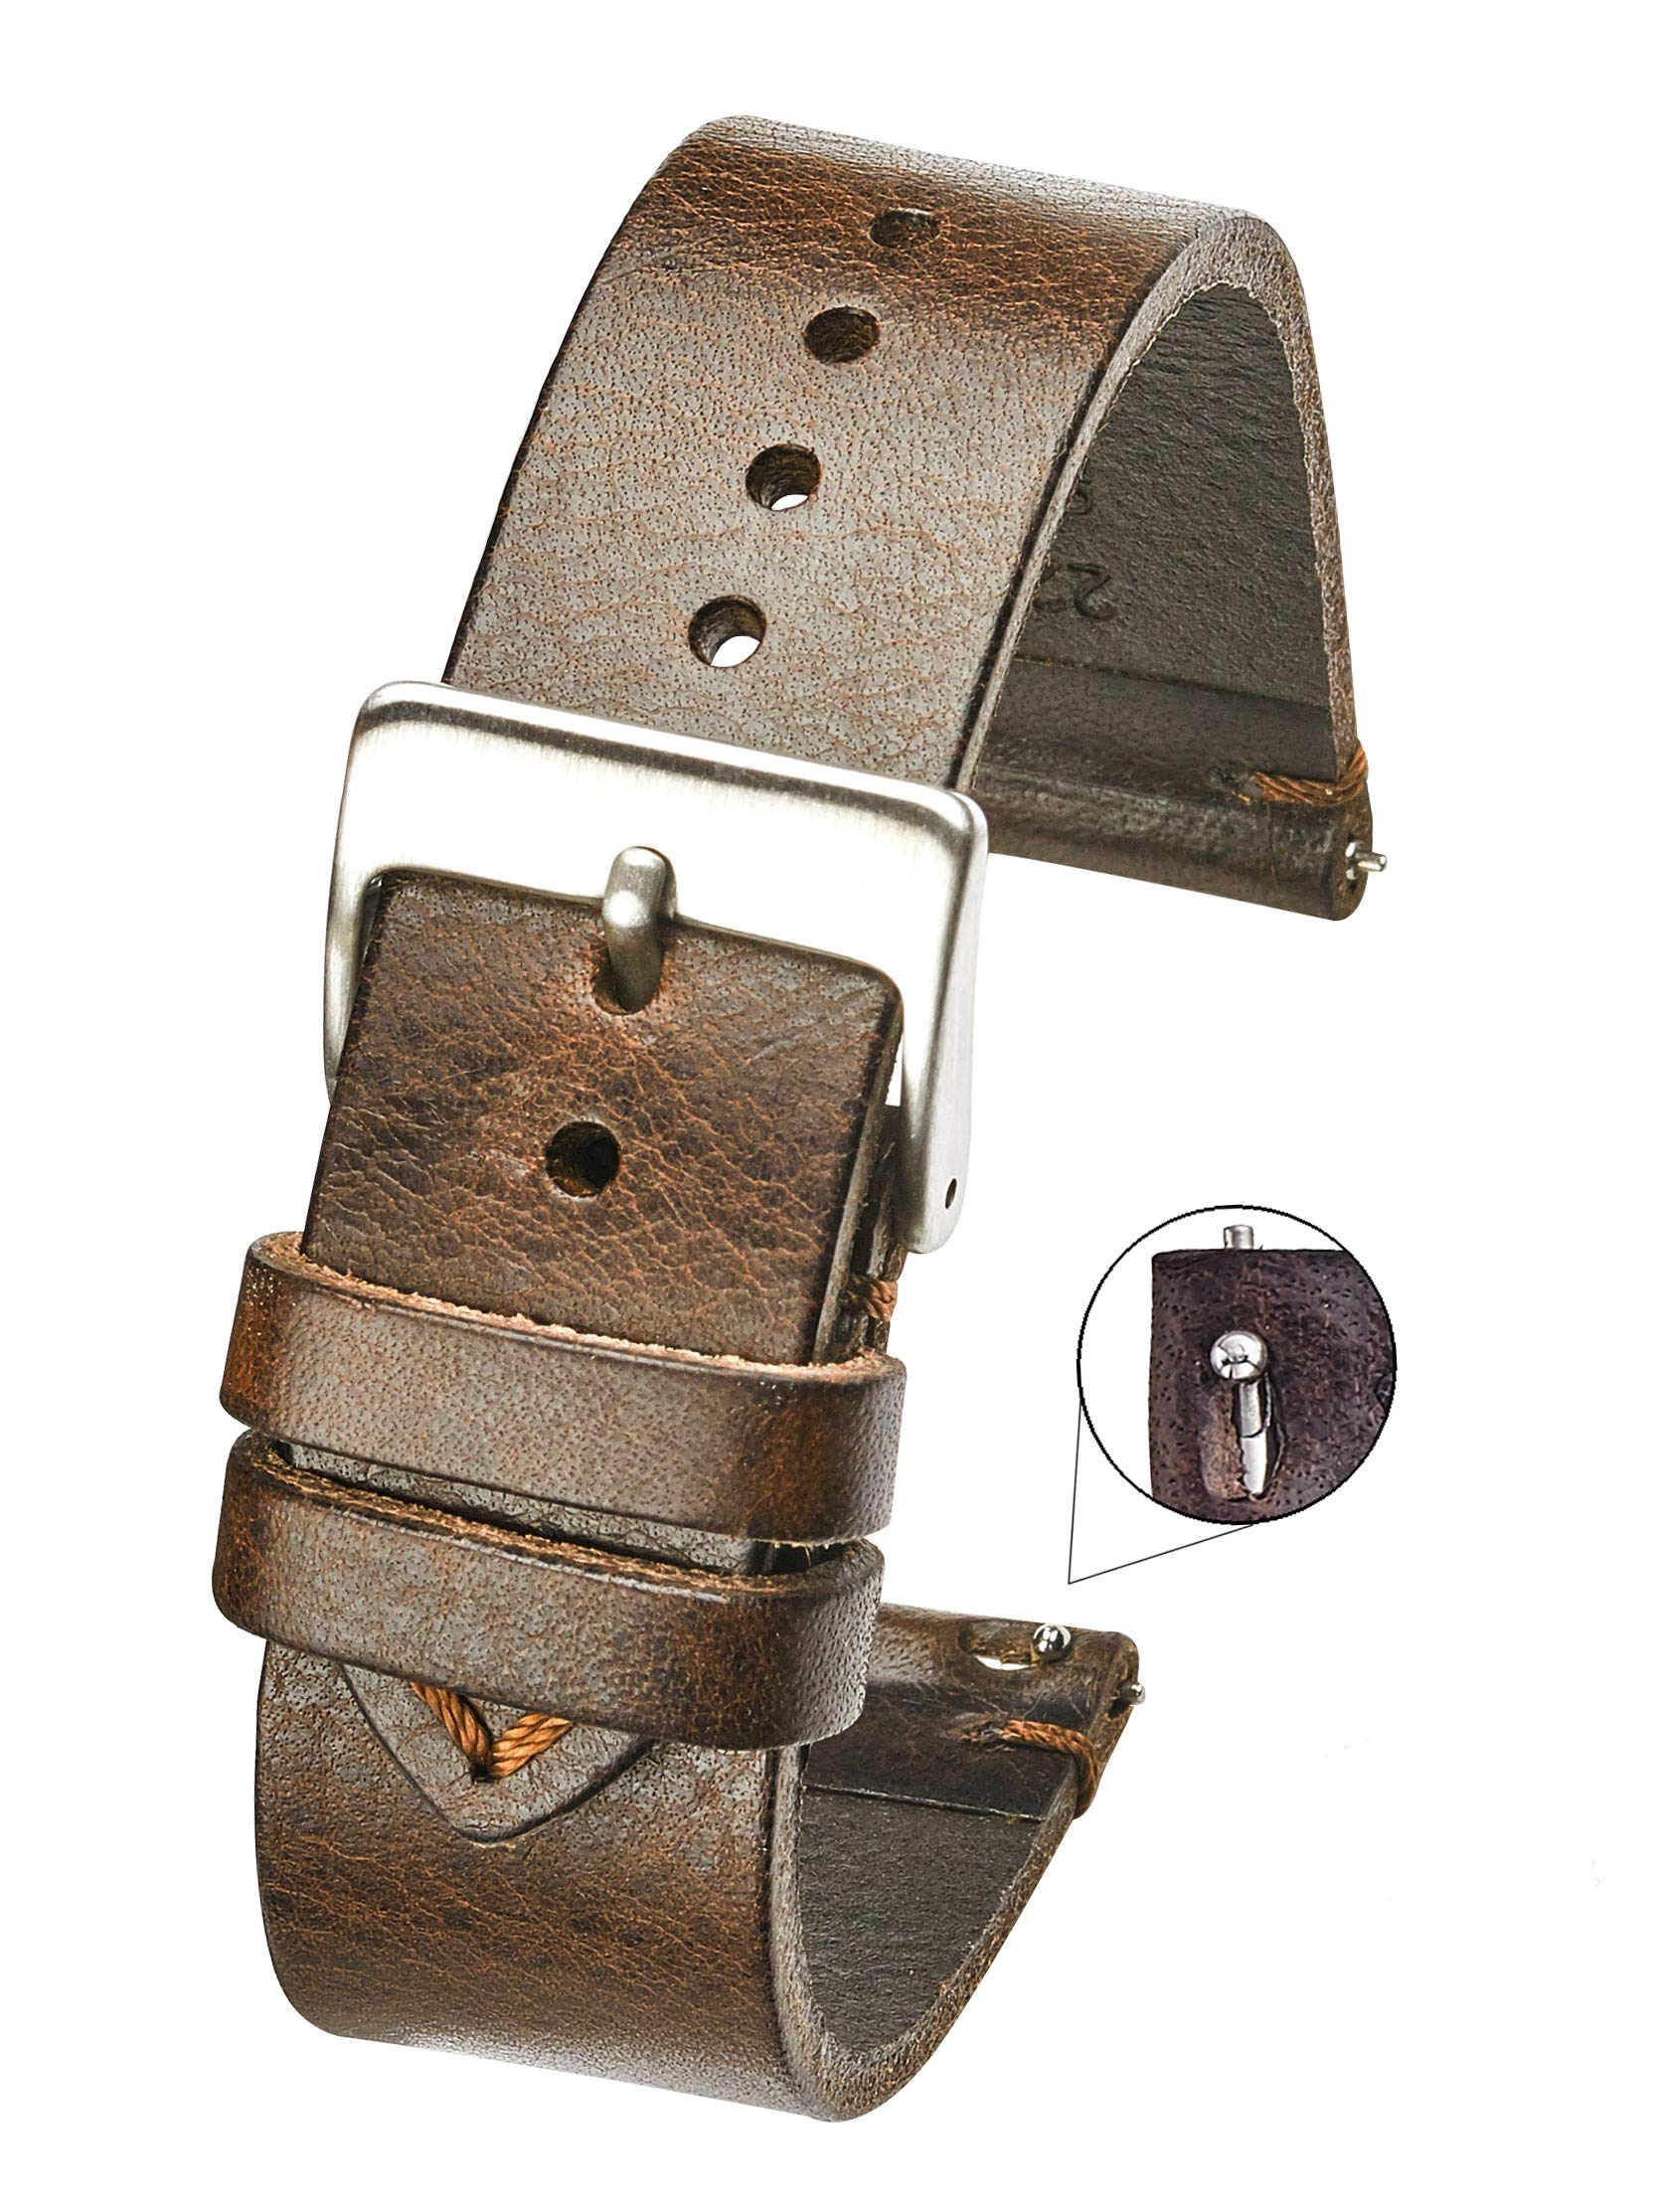 Hand Made Genuine Vintage Leather Watch Strap with Quick Release Steel Spring Bars - Brown - 22mm (fits Wrist Size 6 1/4 inch to 8 inch)